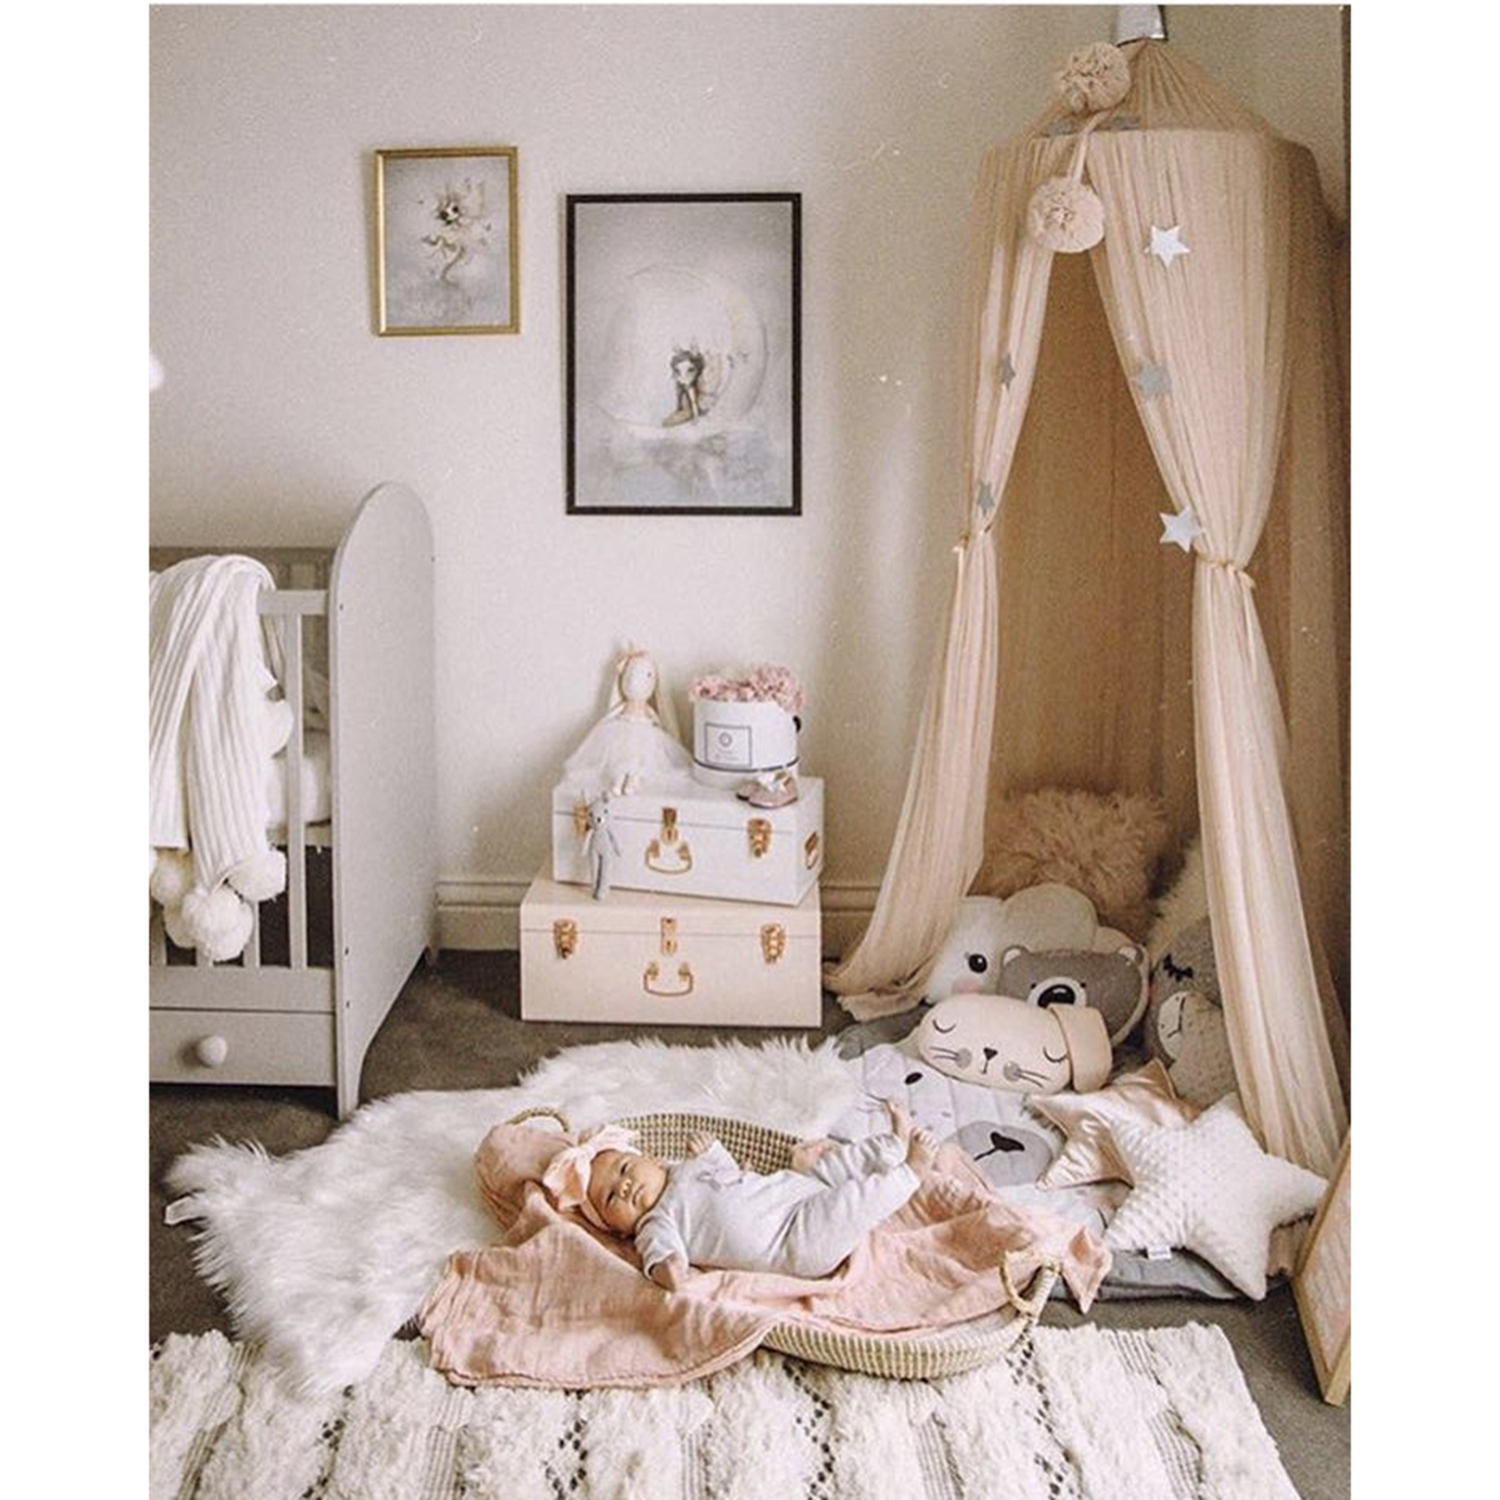 7 Colors Hanging Kids Baby Bedding Dome Bed Canopy Cotton Mosquito Net Bedcover Curtain Baby Kids Reading Playing Home Decor D30